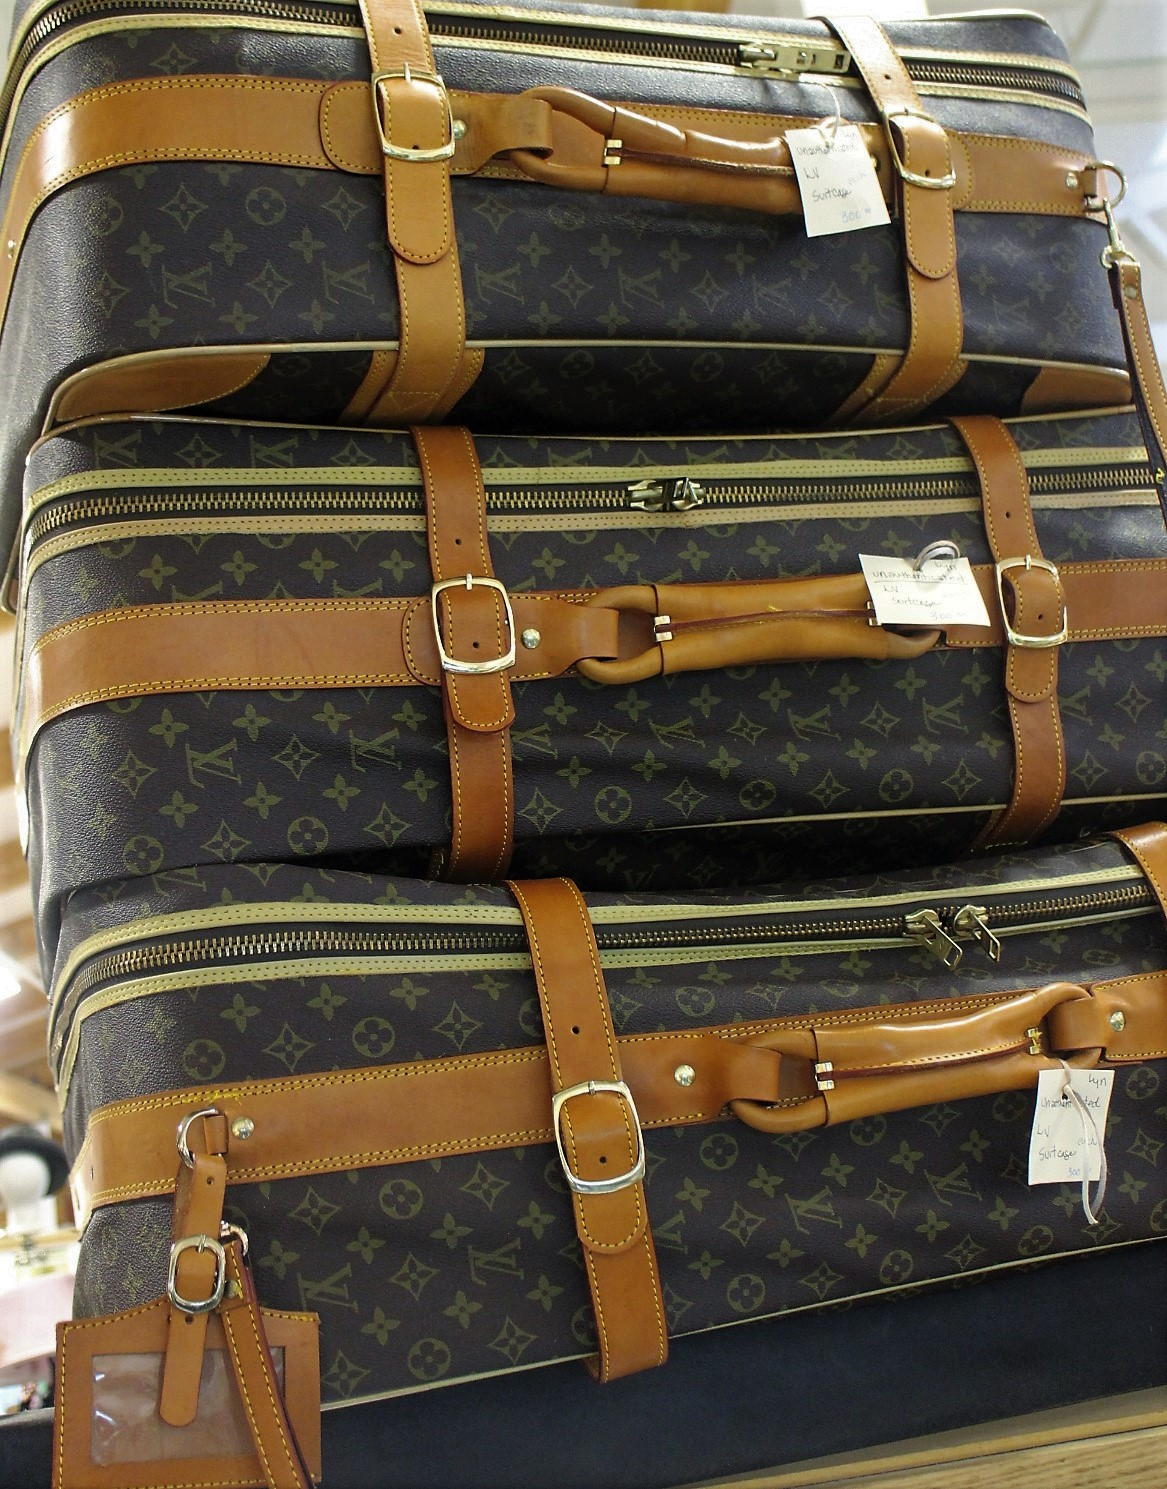 LOUIS VUITTON LUGAGE? - I don't know if they are real, but I did spot this luggage collection that claims to be Louis Vuitton at Apple Annies.   Perhaps honeymoon luggage to jet off to that beautiful tropical paradise you've always wanted to go to?  Each piece is priced at $300.